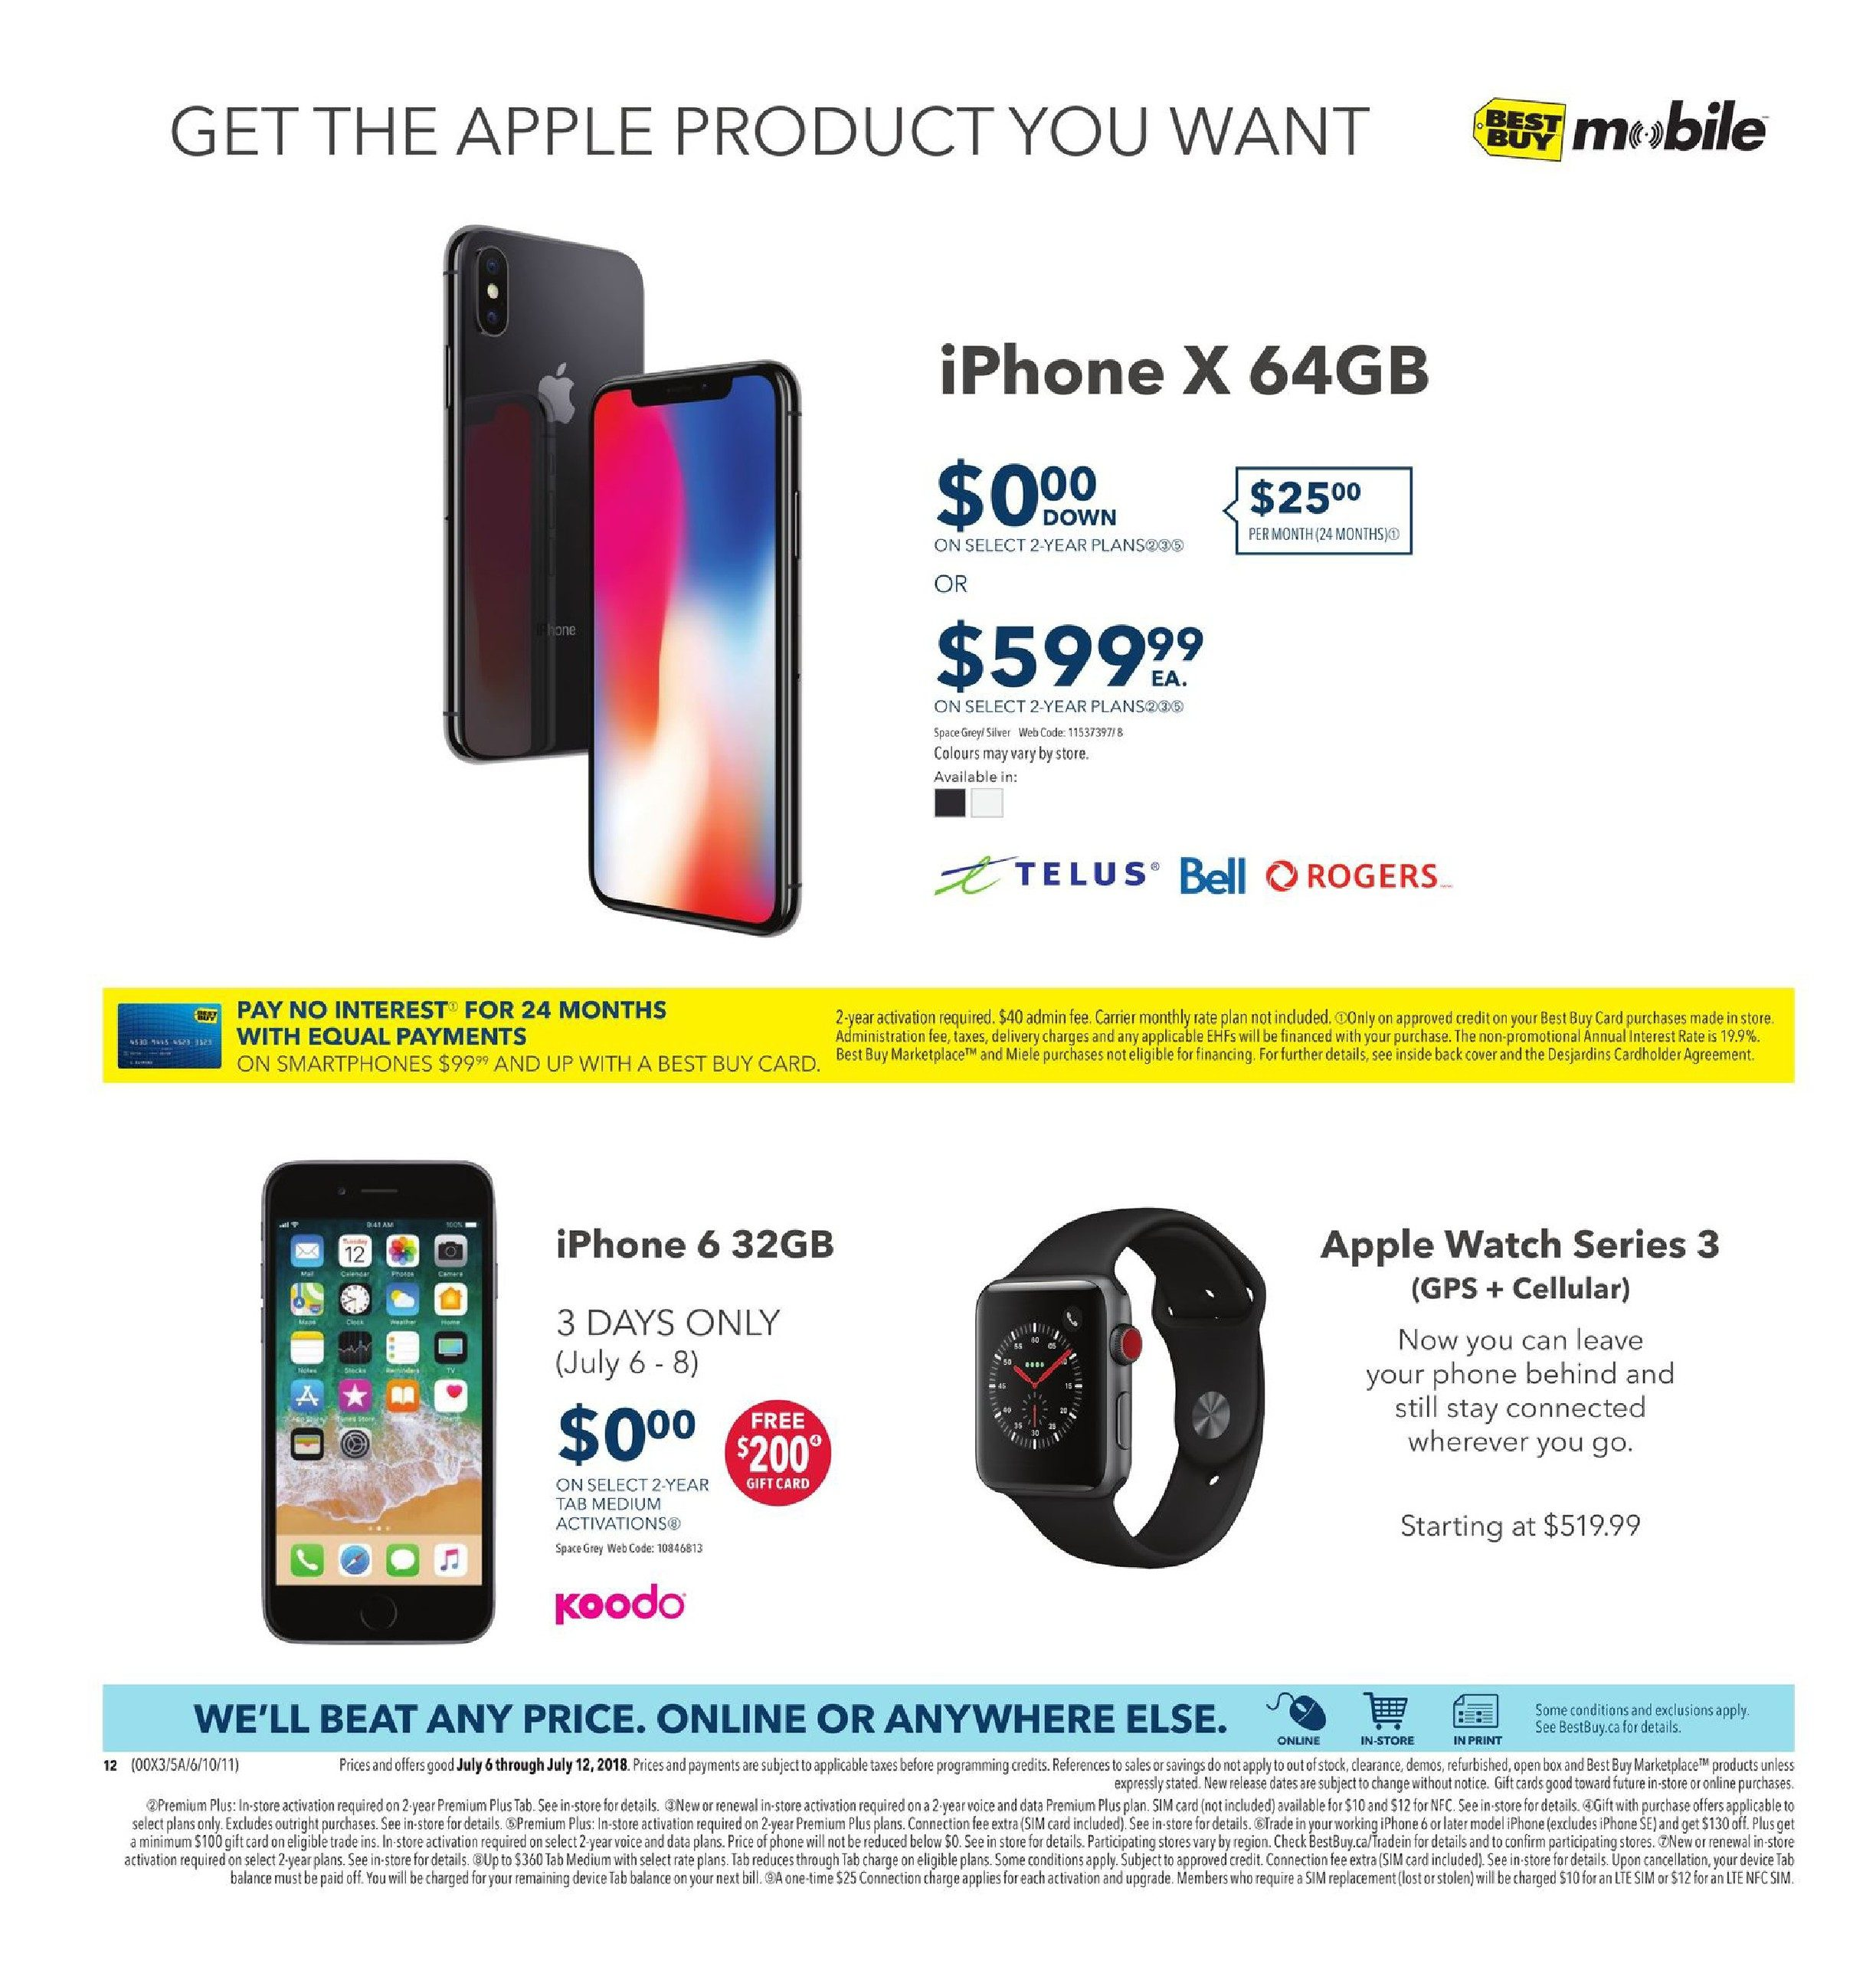 Best Buy Weekly Flyer Hot Tech At Even Hotter Savings Hdd Carrier Welcome To Valhalla Inside The New 250gb Xbox 360 Slim Jul 6 12